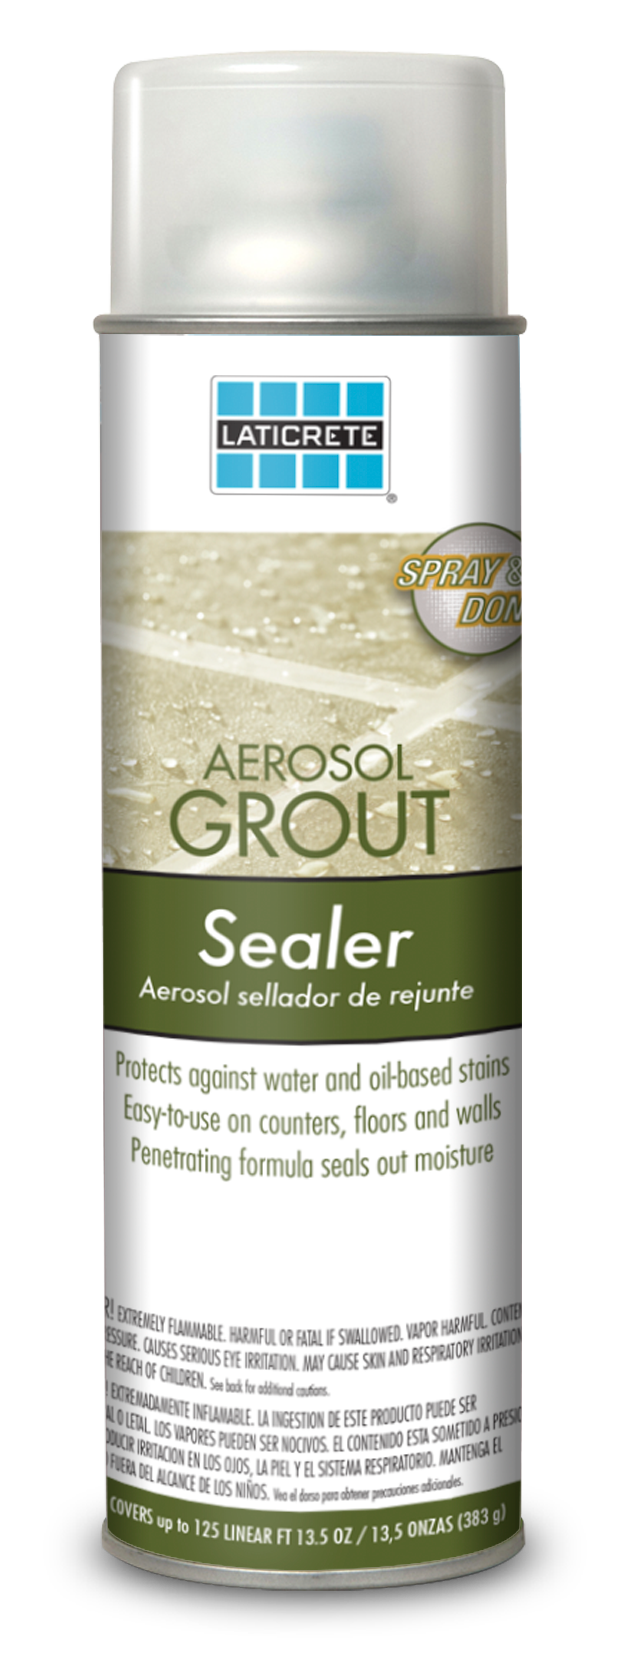 LATICRETE® Aerosol Grout Sealer